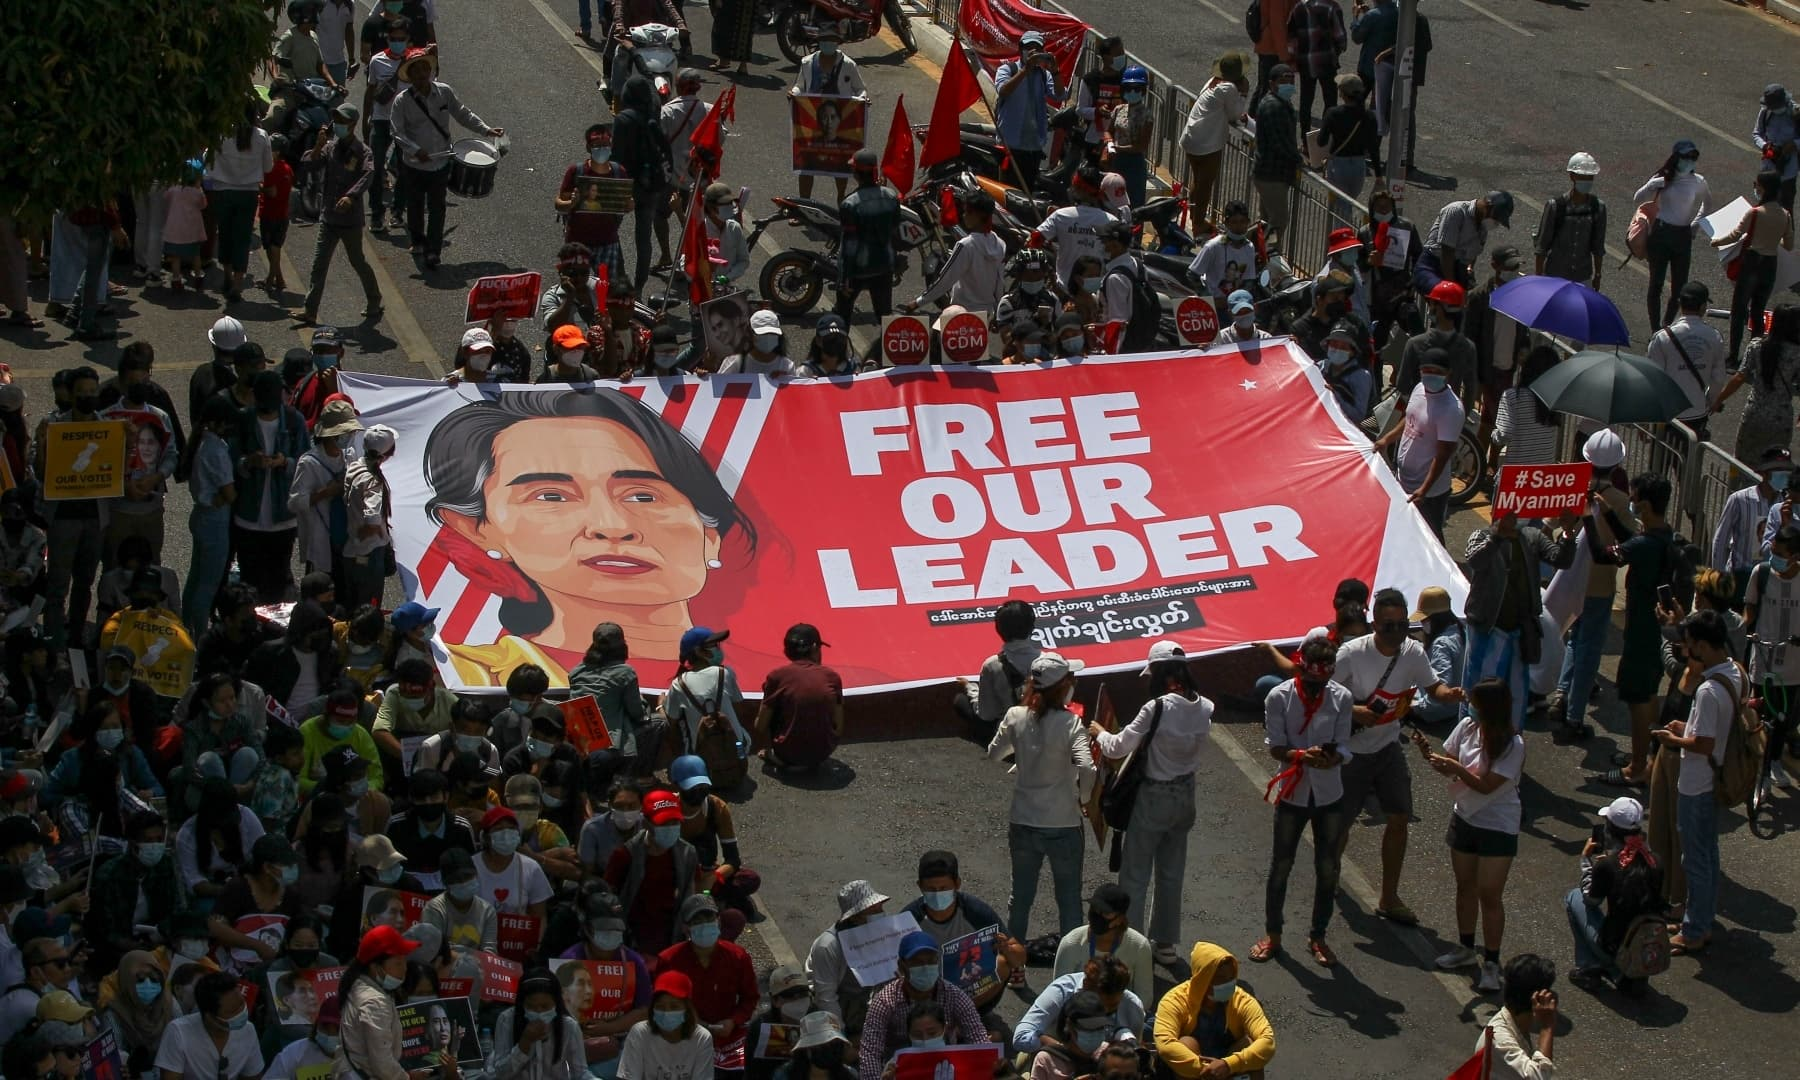 Demonstrators display a banner with an image of deposed Myanmar leader Aung San Suu Kyi during a protest against the military coup in Yangon, Myanmar, Wednesday. — AP